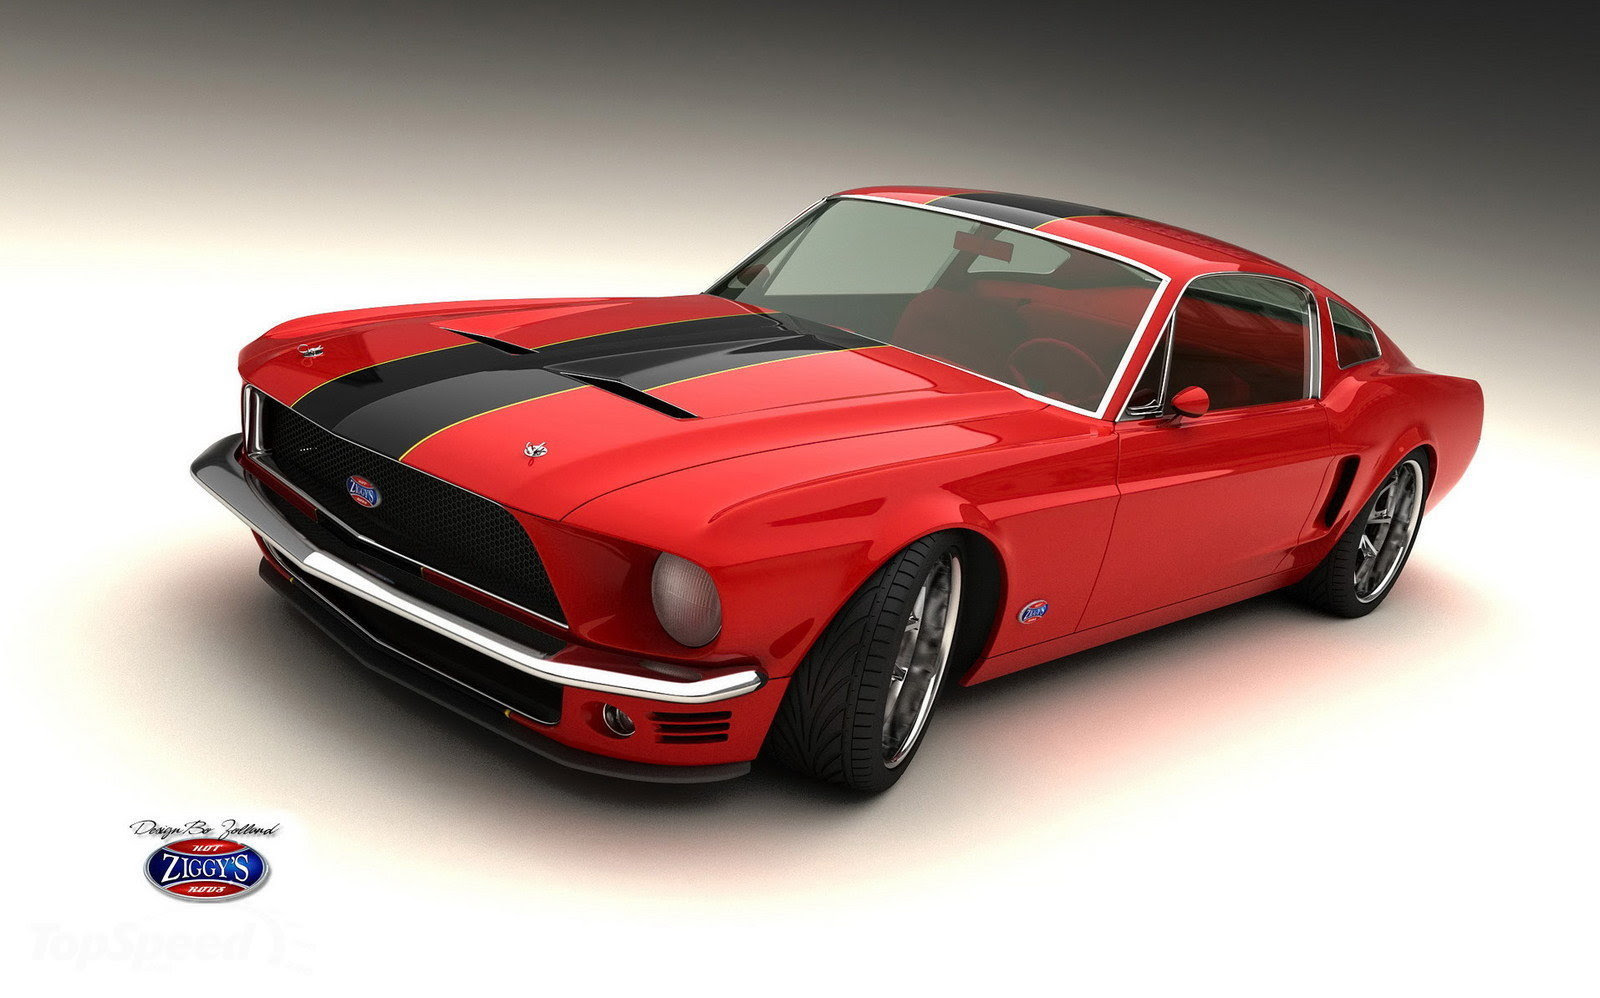 Cars In The End: Detailed Classic Mustang tuned